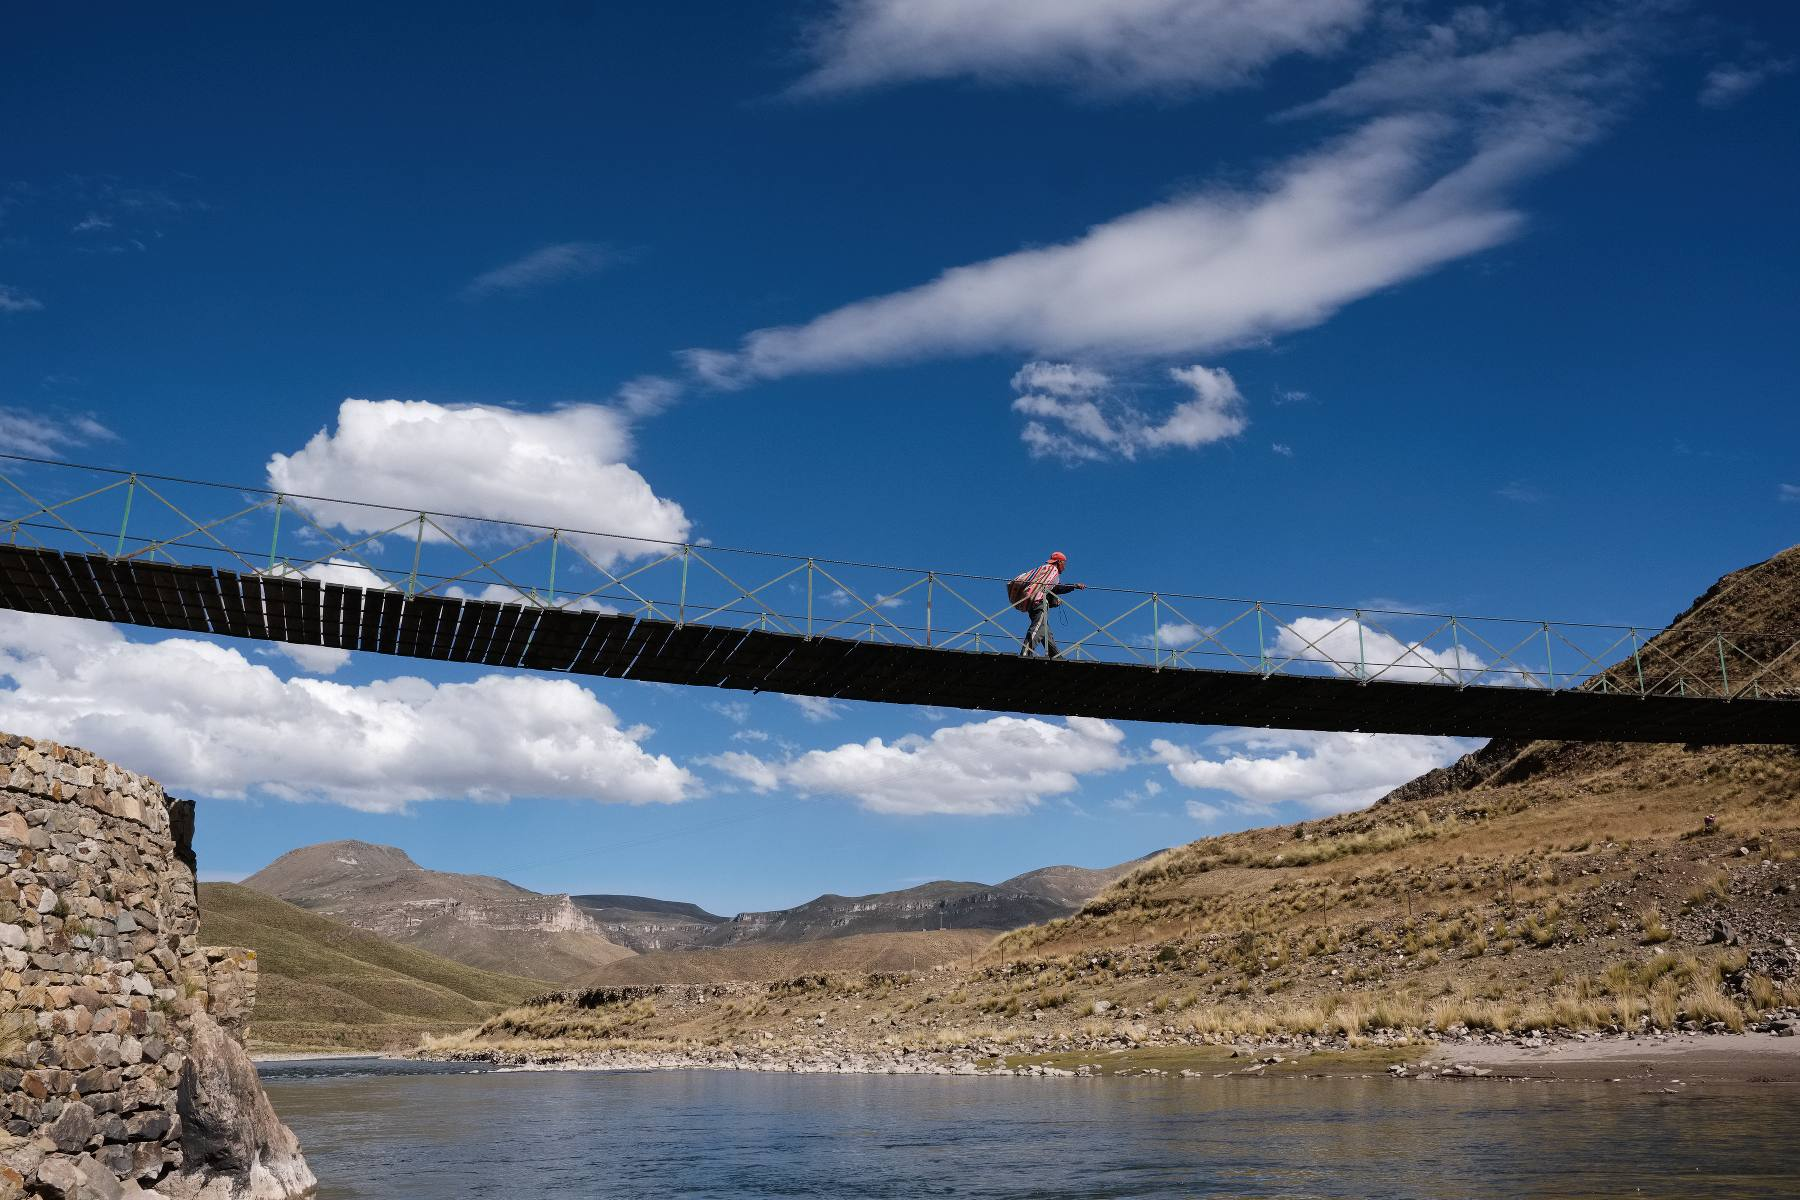 bridge over the Rio Colca at Sibayo